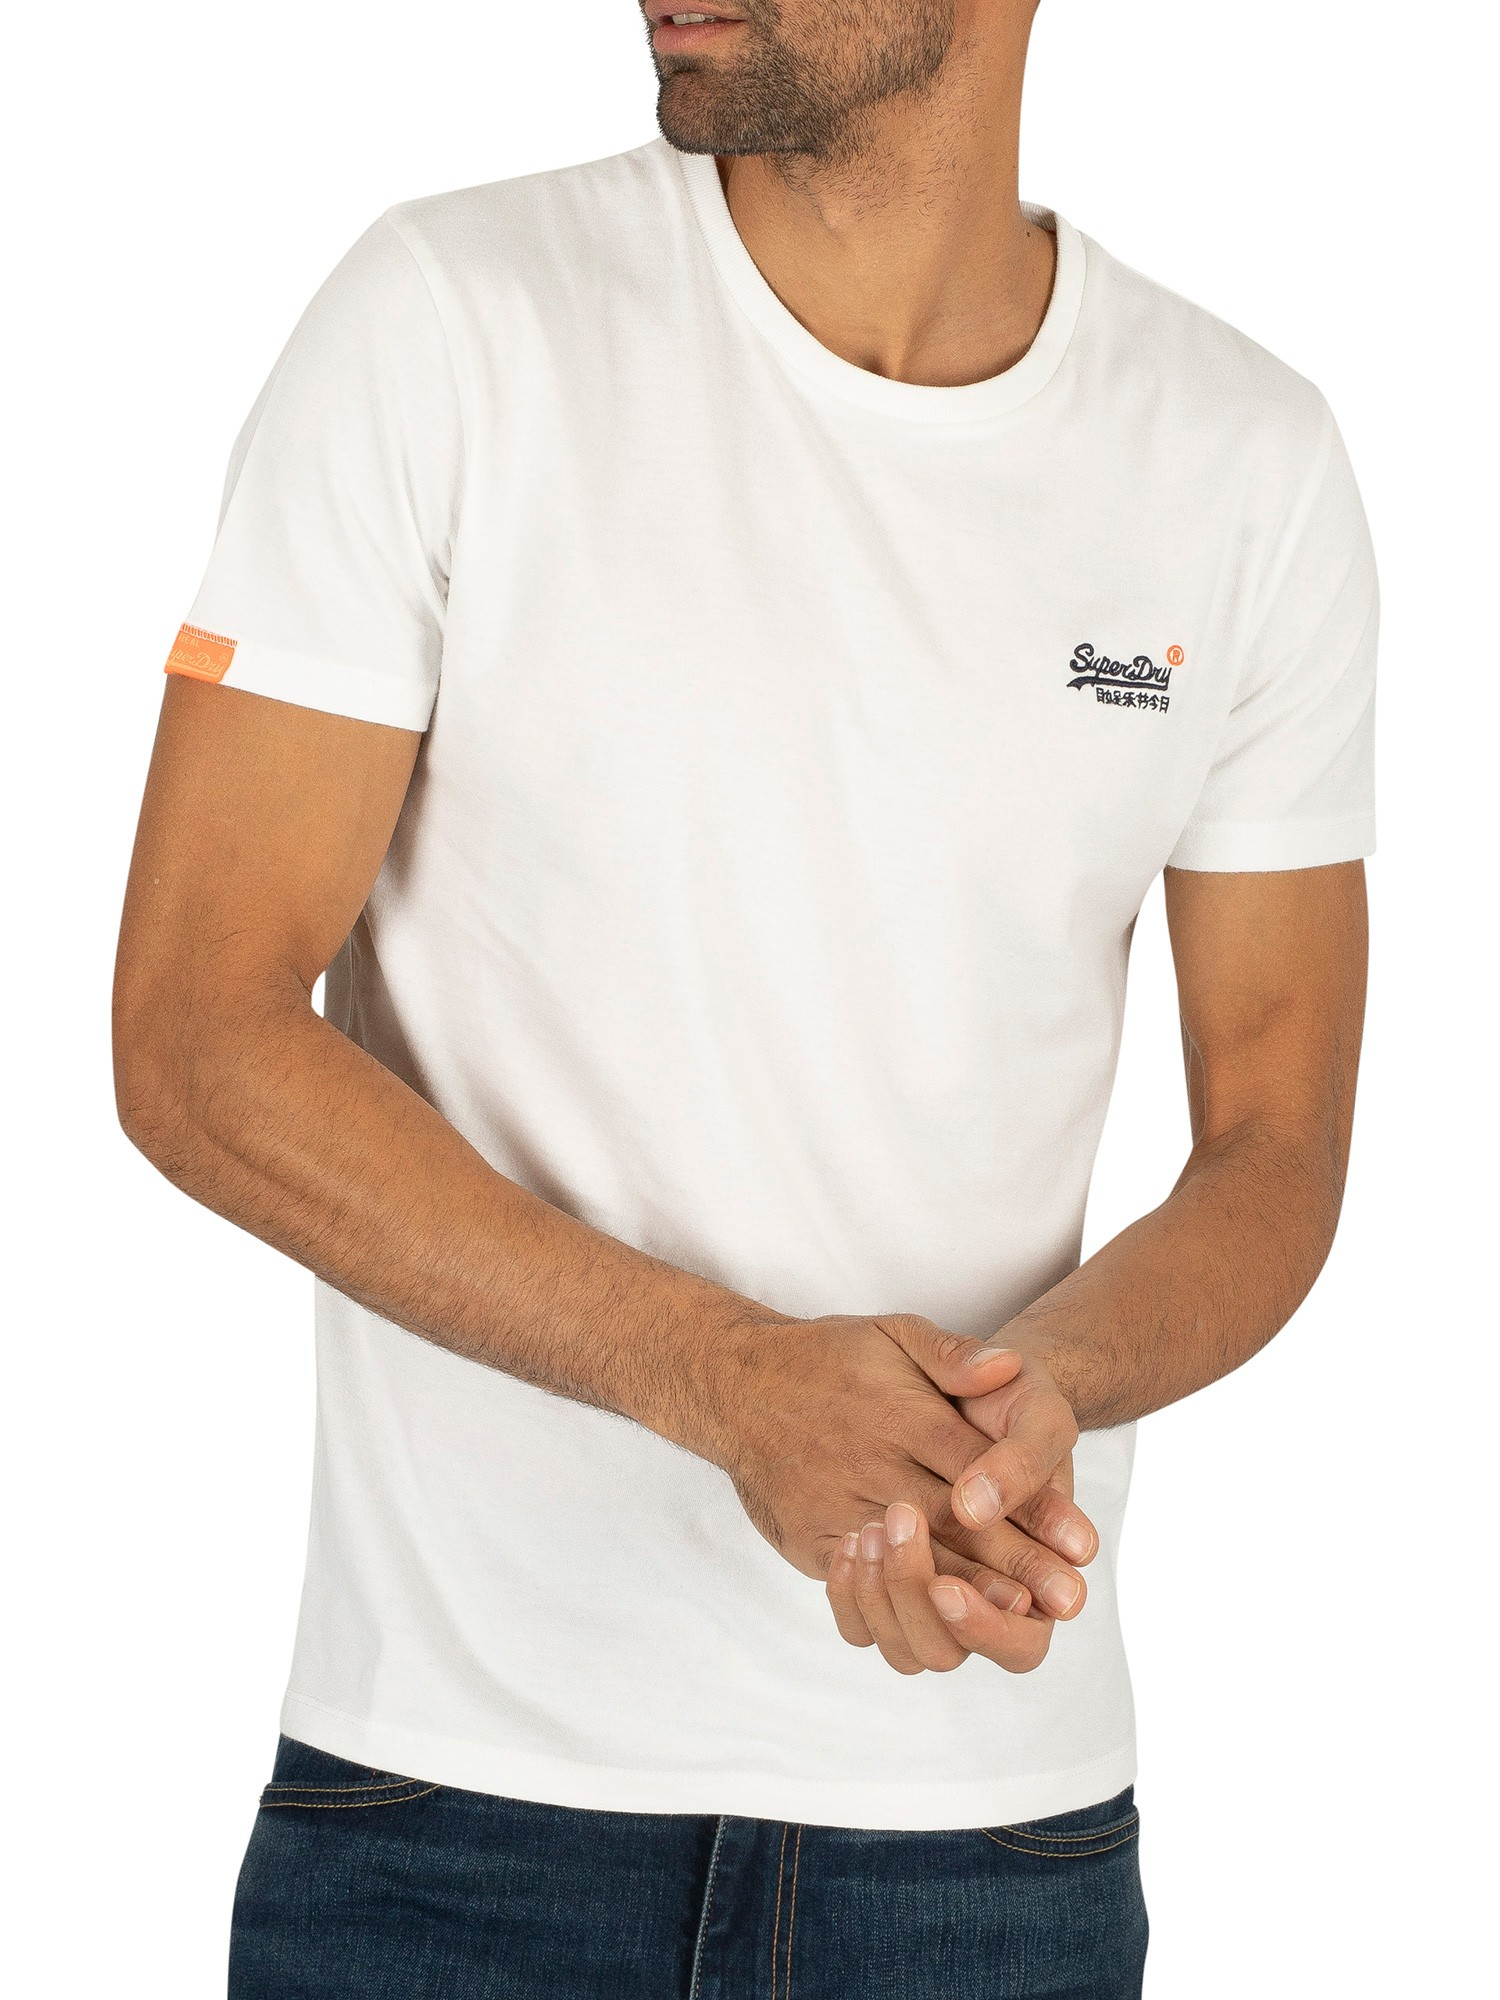 Superdry Orange Label Vintage EMB T-Shirt - Optic White